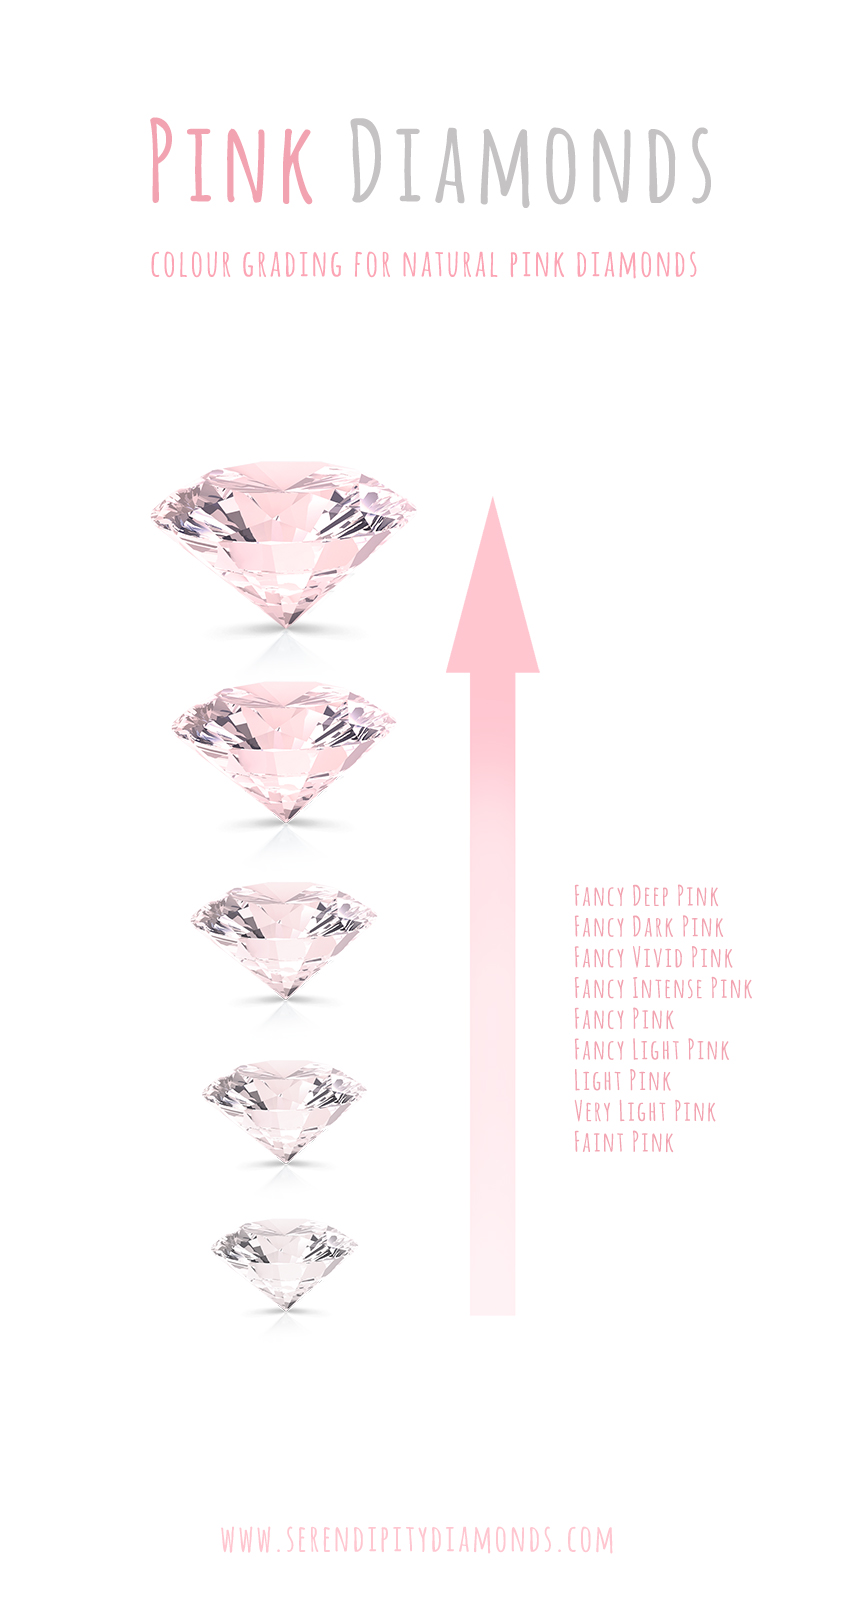 Colour grading for natural pink diamonds